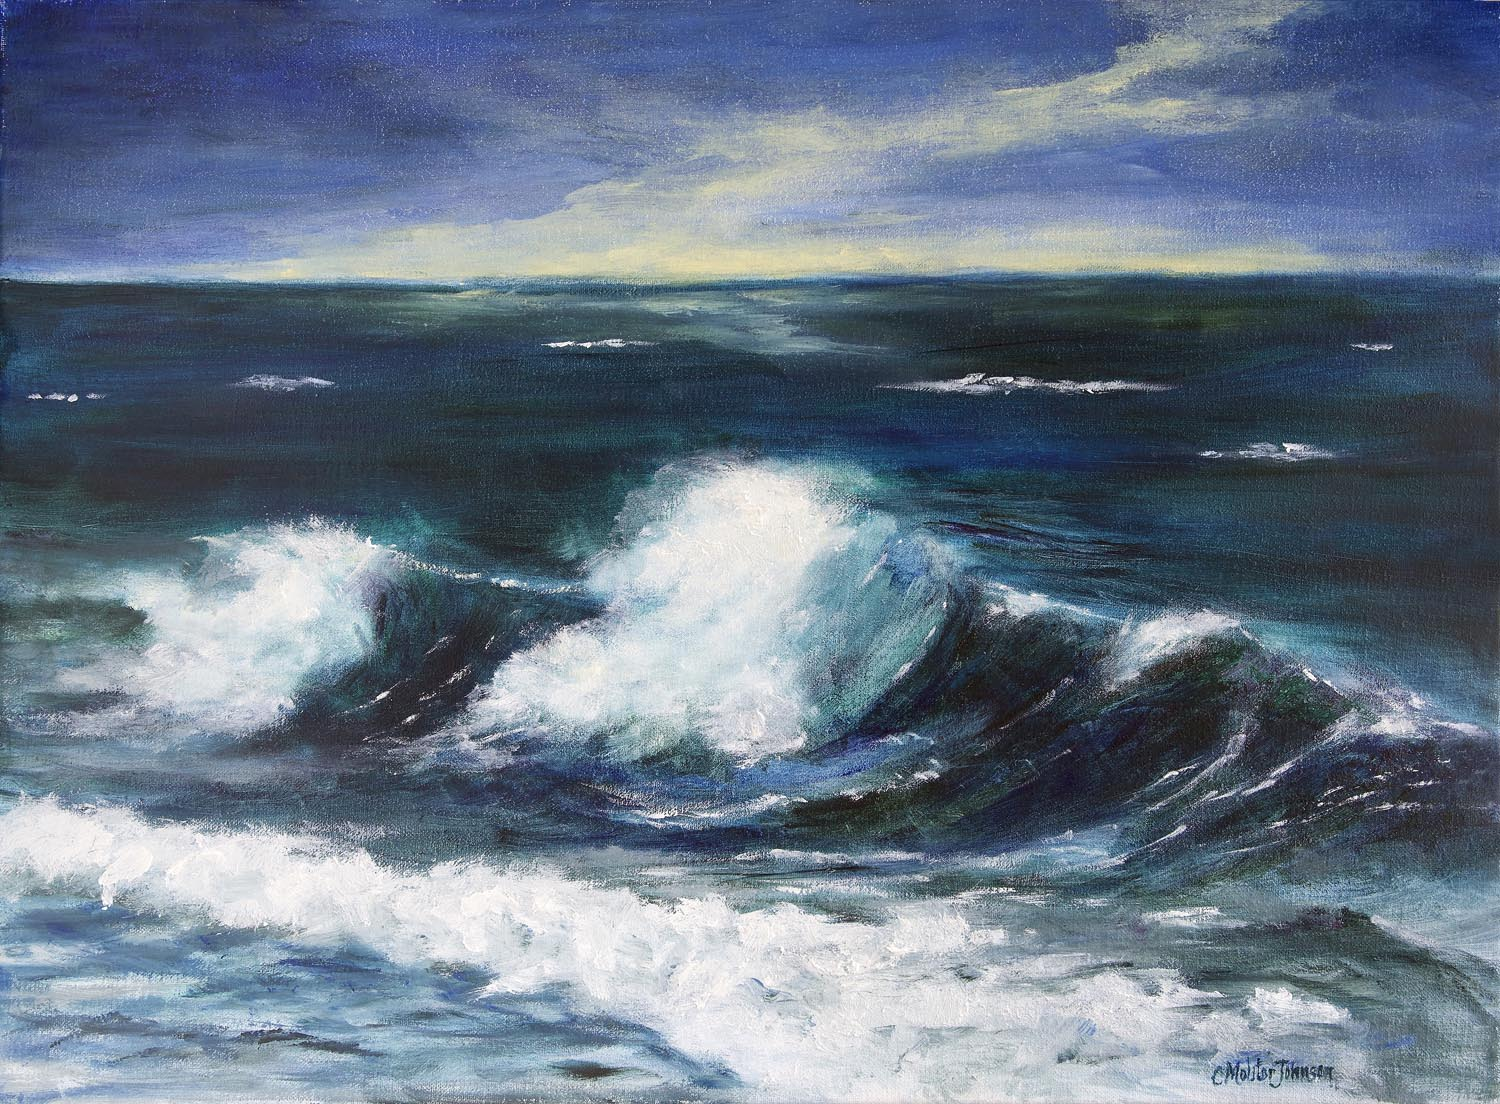 41 - Stormy Swell